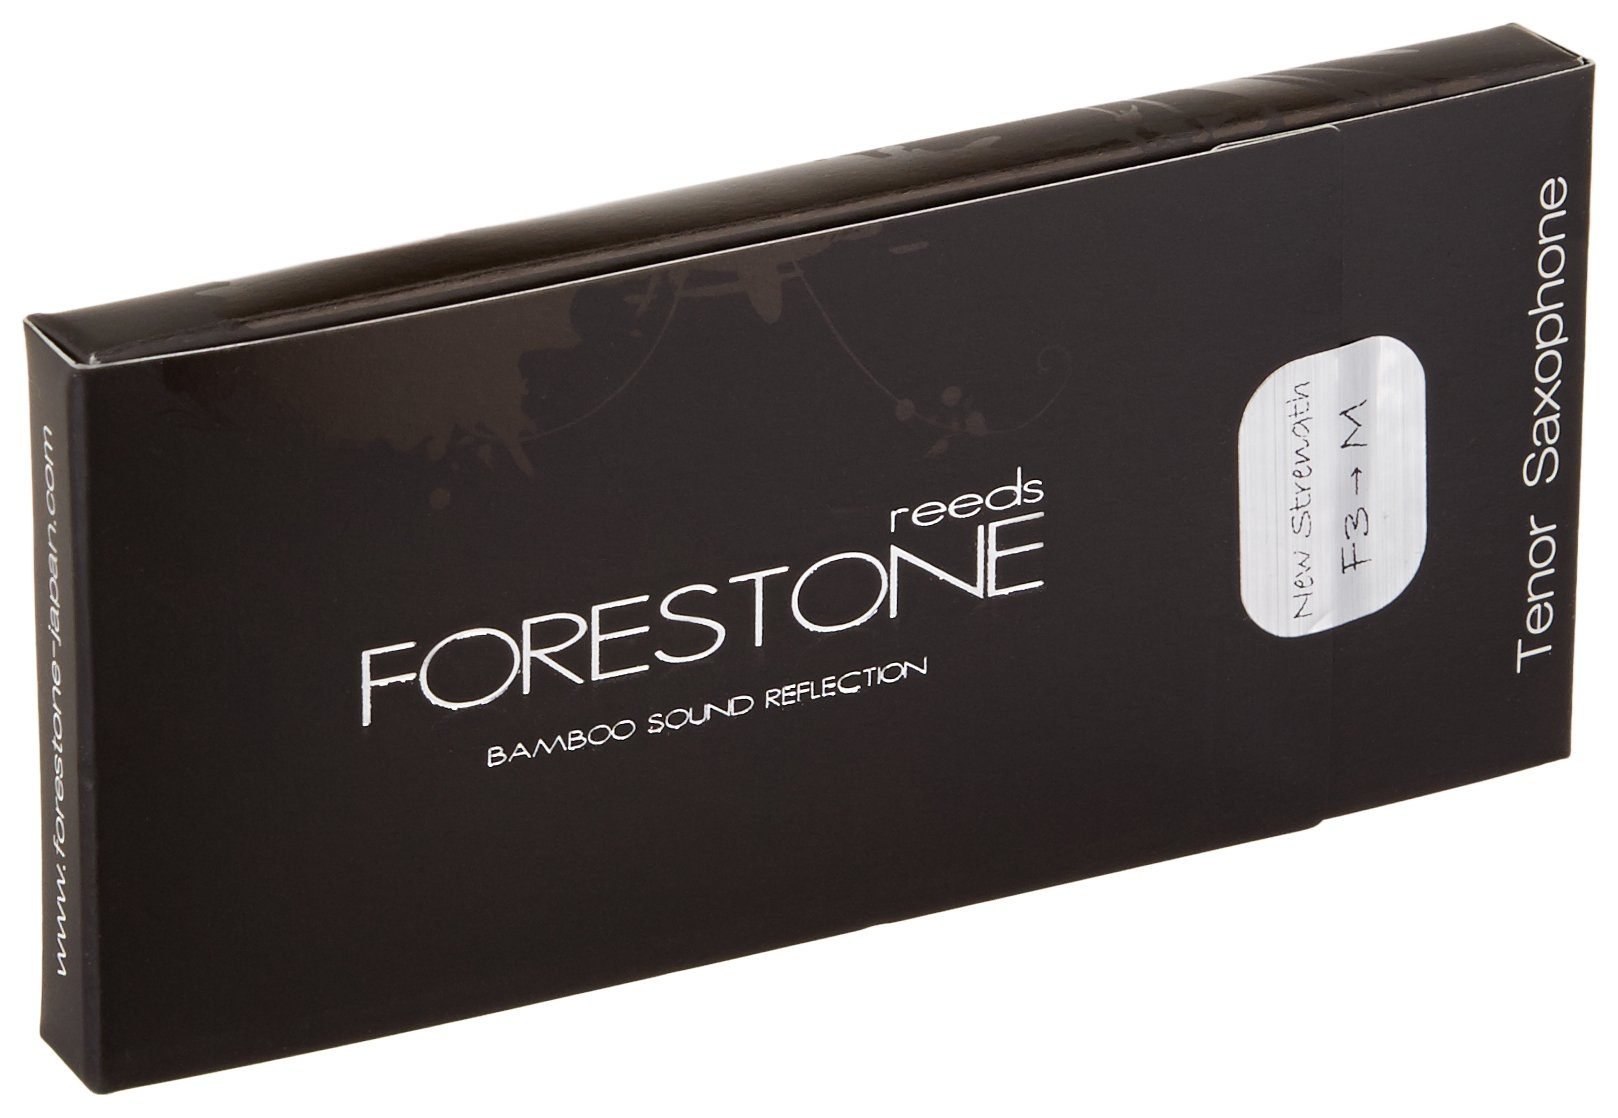 Forestone - FTS030 Tenor Saxophone Reed F3 - Brown